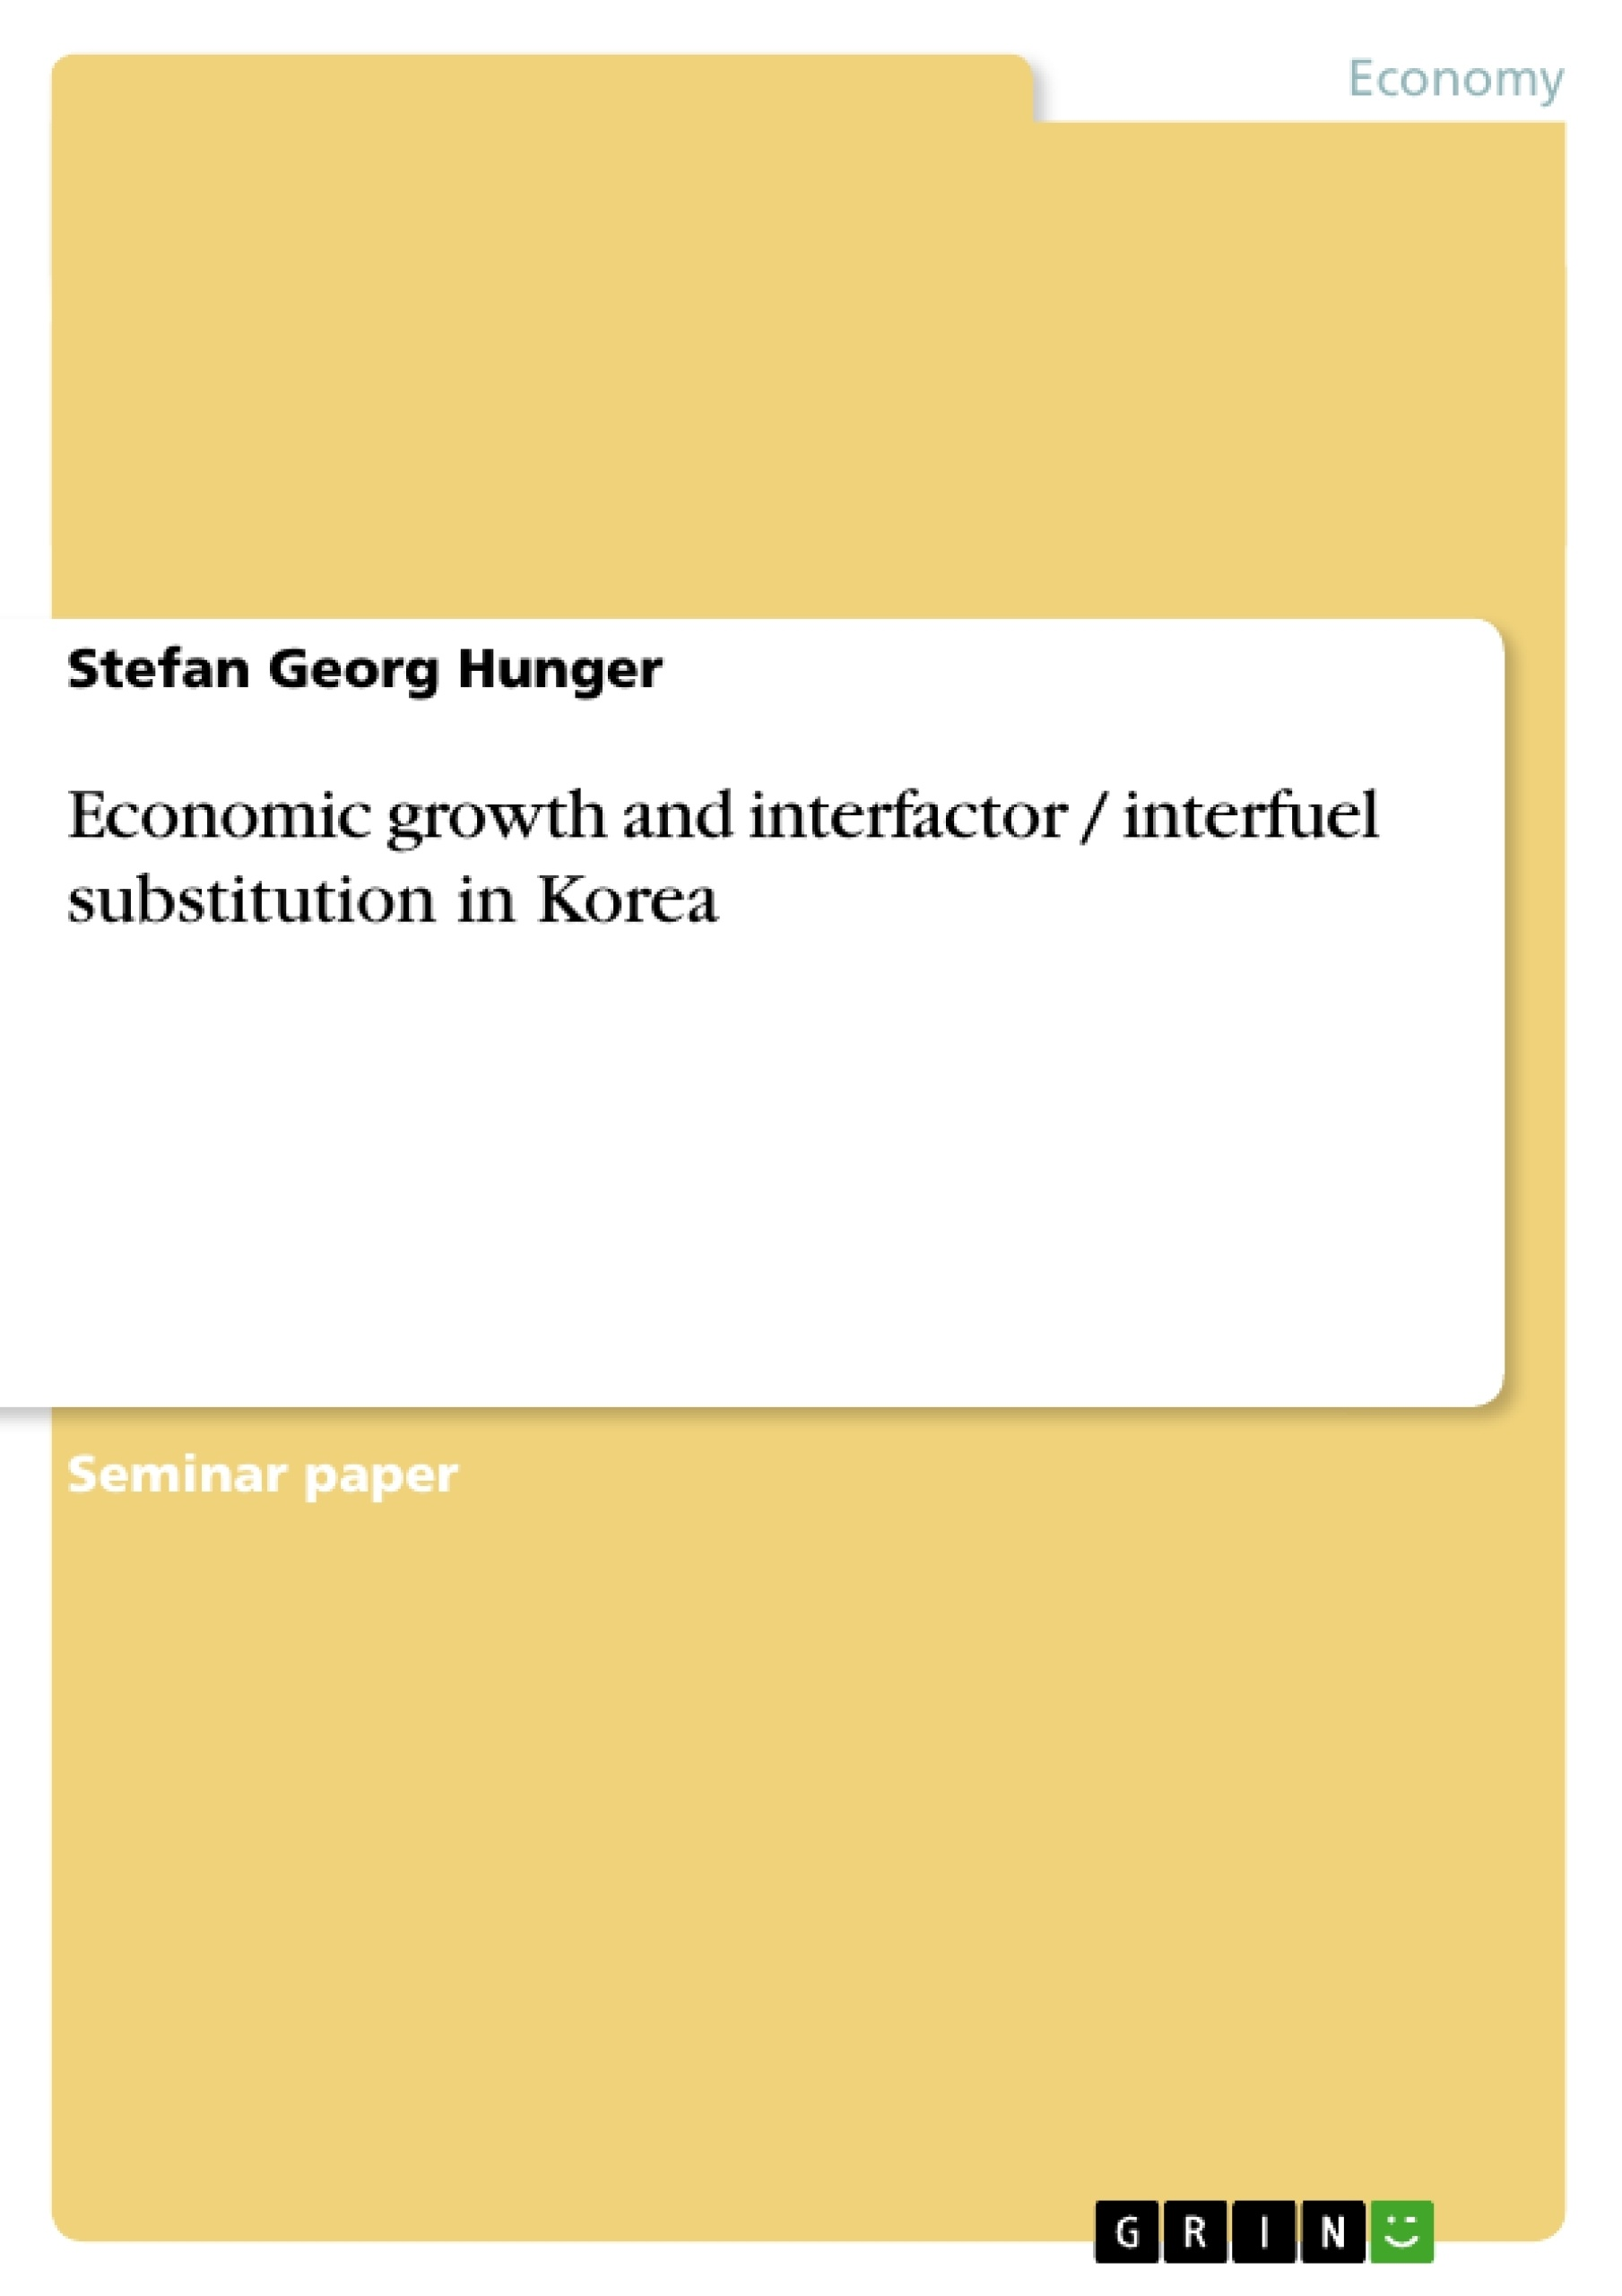 Title: Economic growth and interfactor / interfuel substitution in Korea